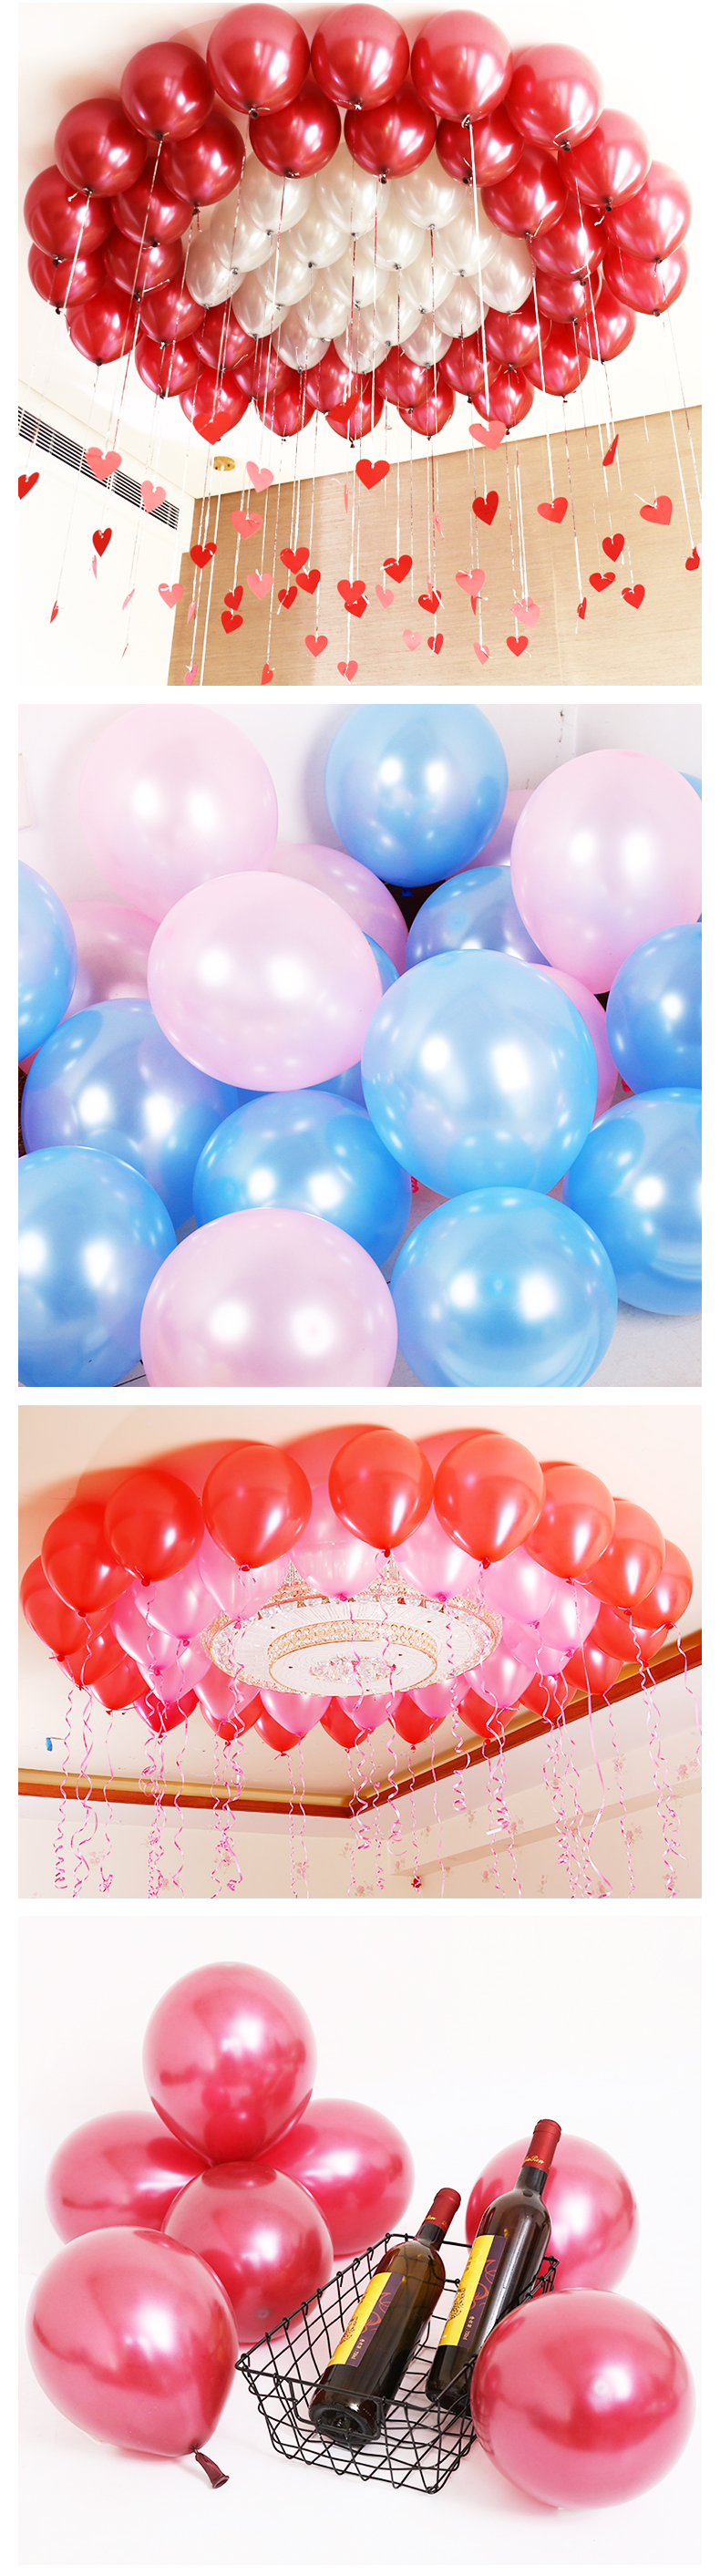 China factory Round 12-inch 2.8 grams metallic pearl balloons meet CE/ EN7-1-2-3 helium quality